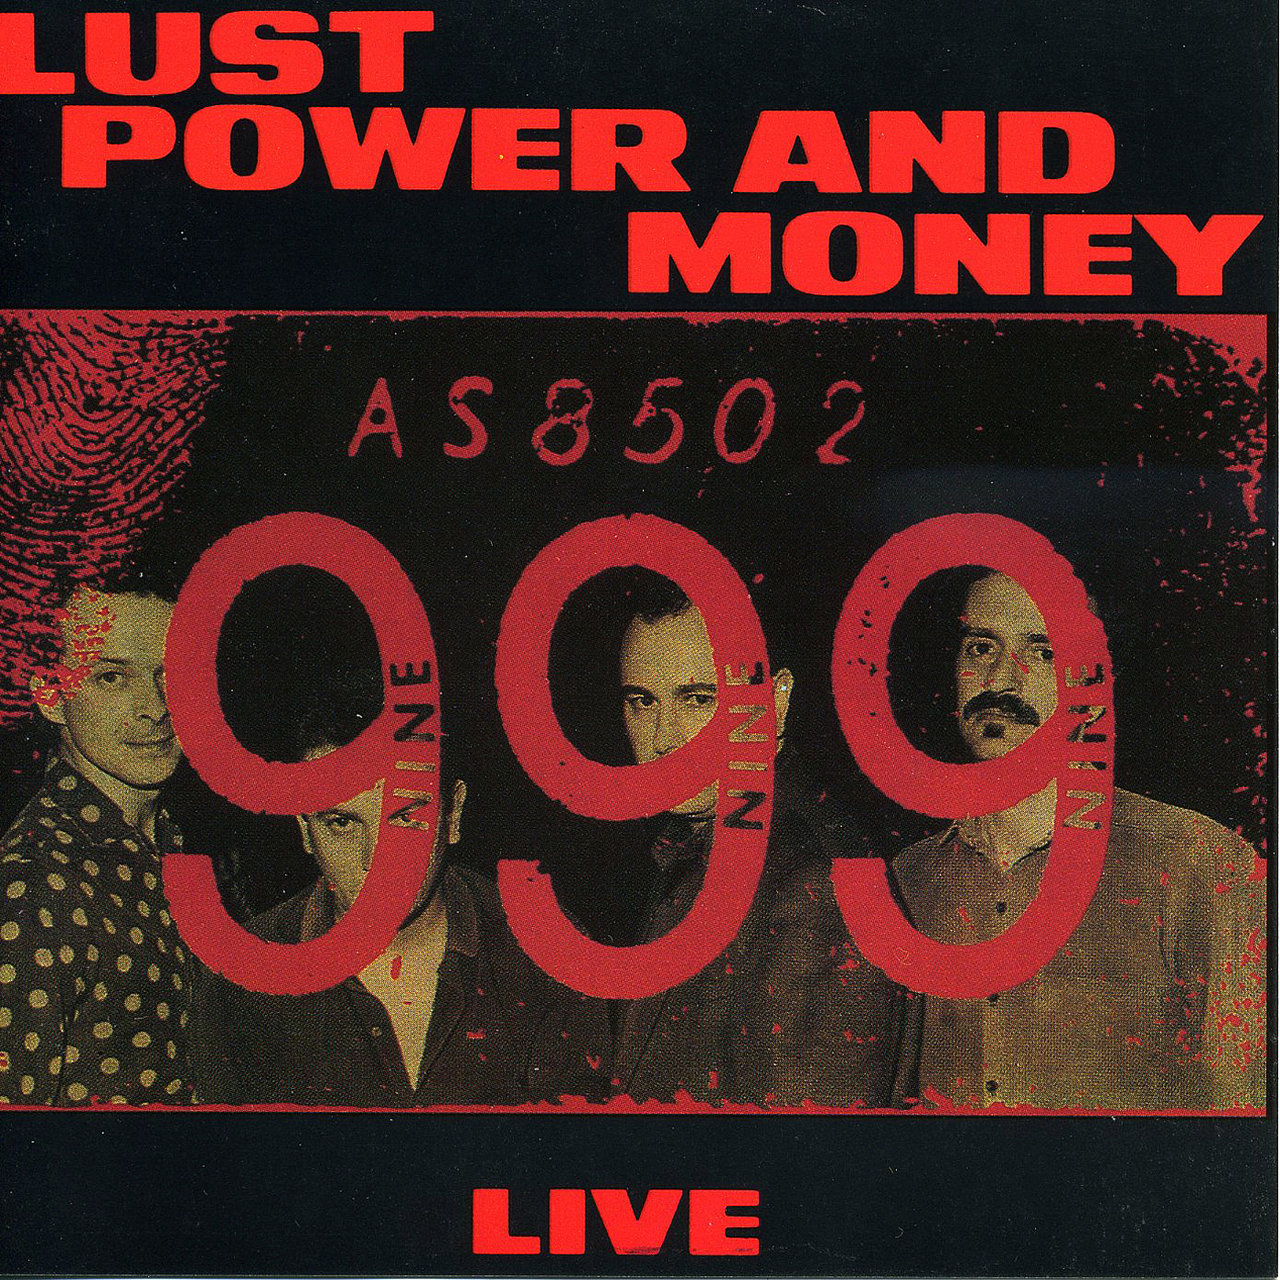 Lust, Power And Money